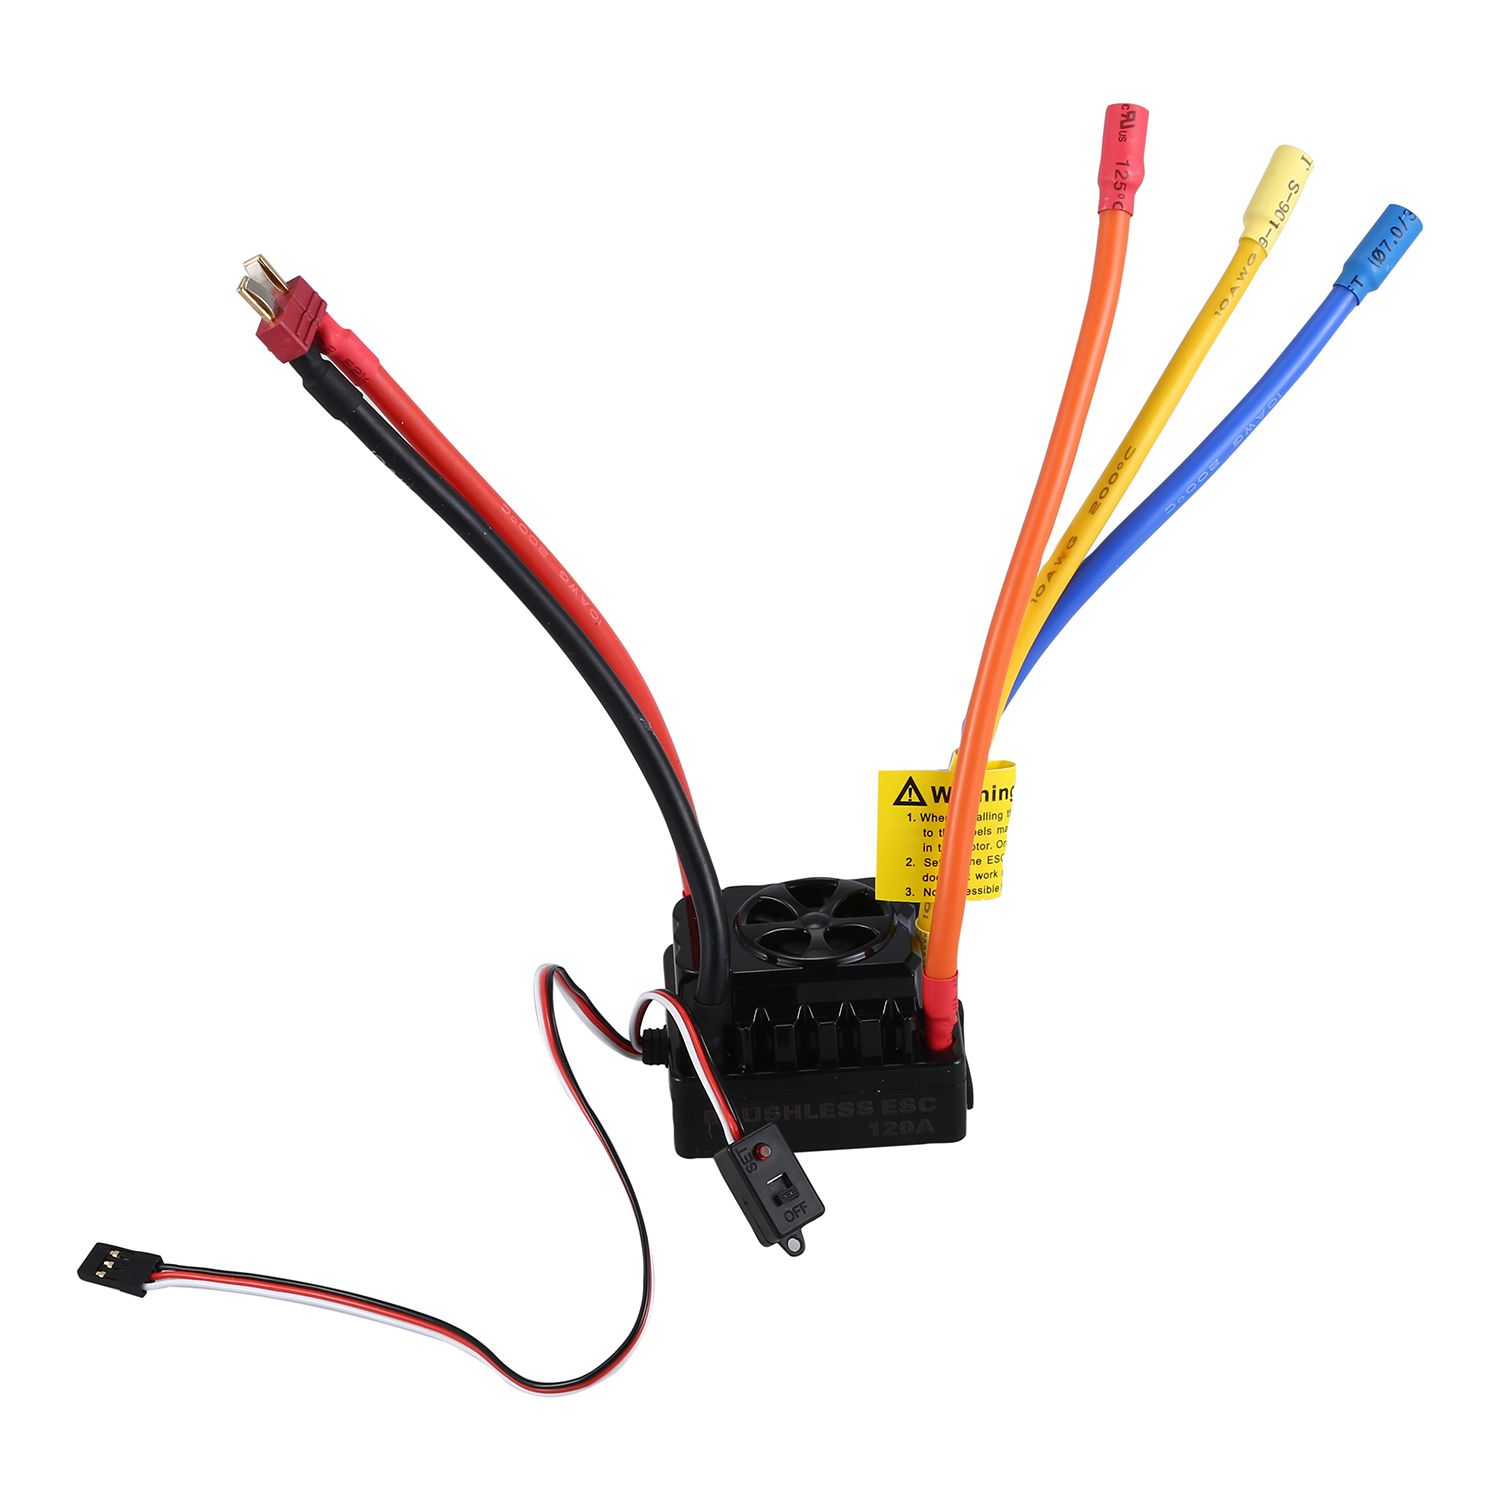 купить LCLL-SURPASS HOBBY 4076 2000KV Sensorless Brushless Motor & 120A Brushless ESC with 6V/3A Switch Programming Card Combo Set fo по цене 5586.67 рублей